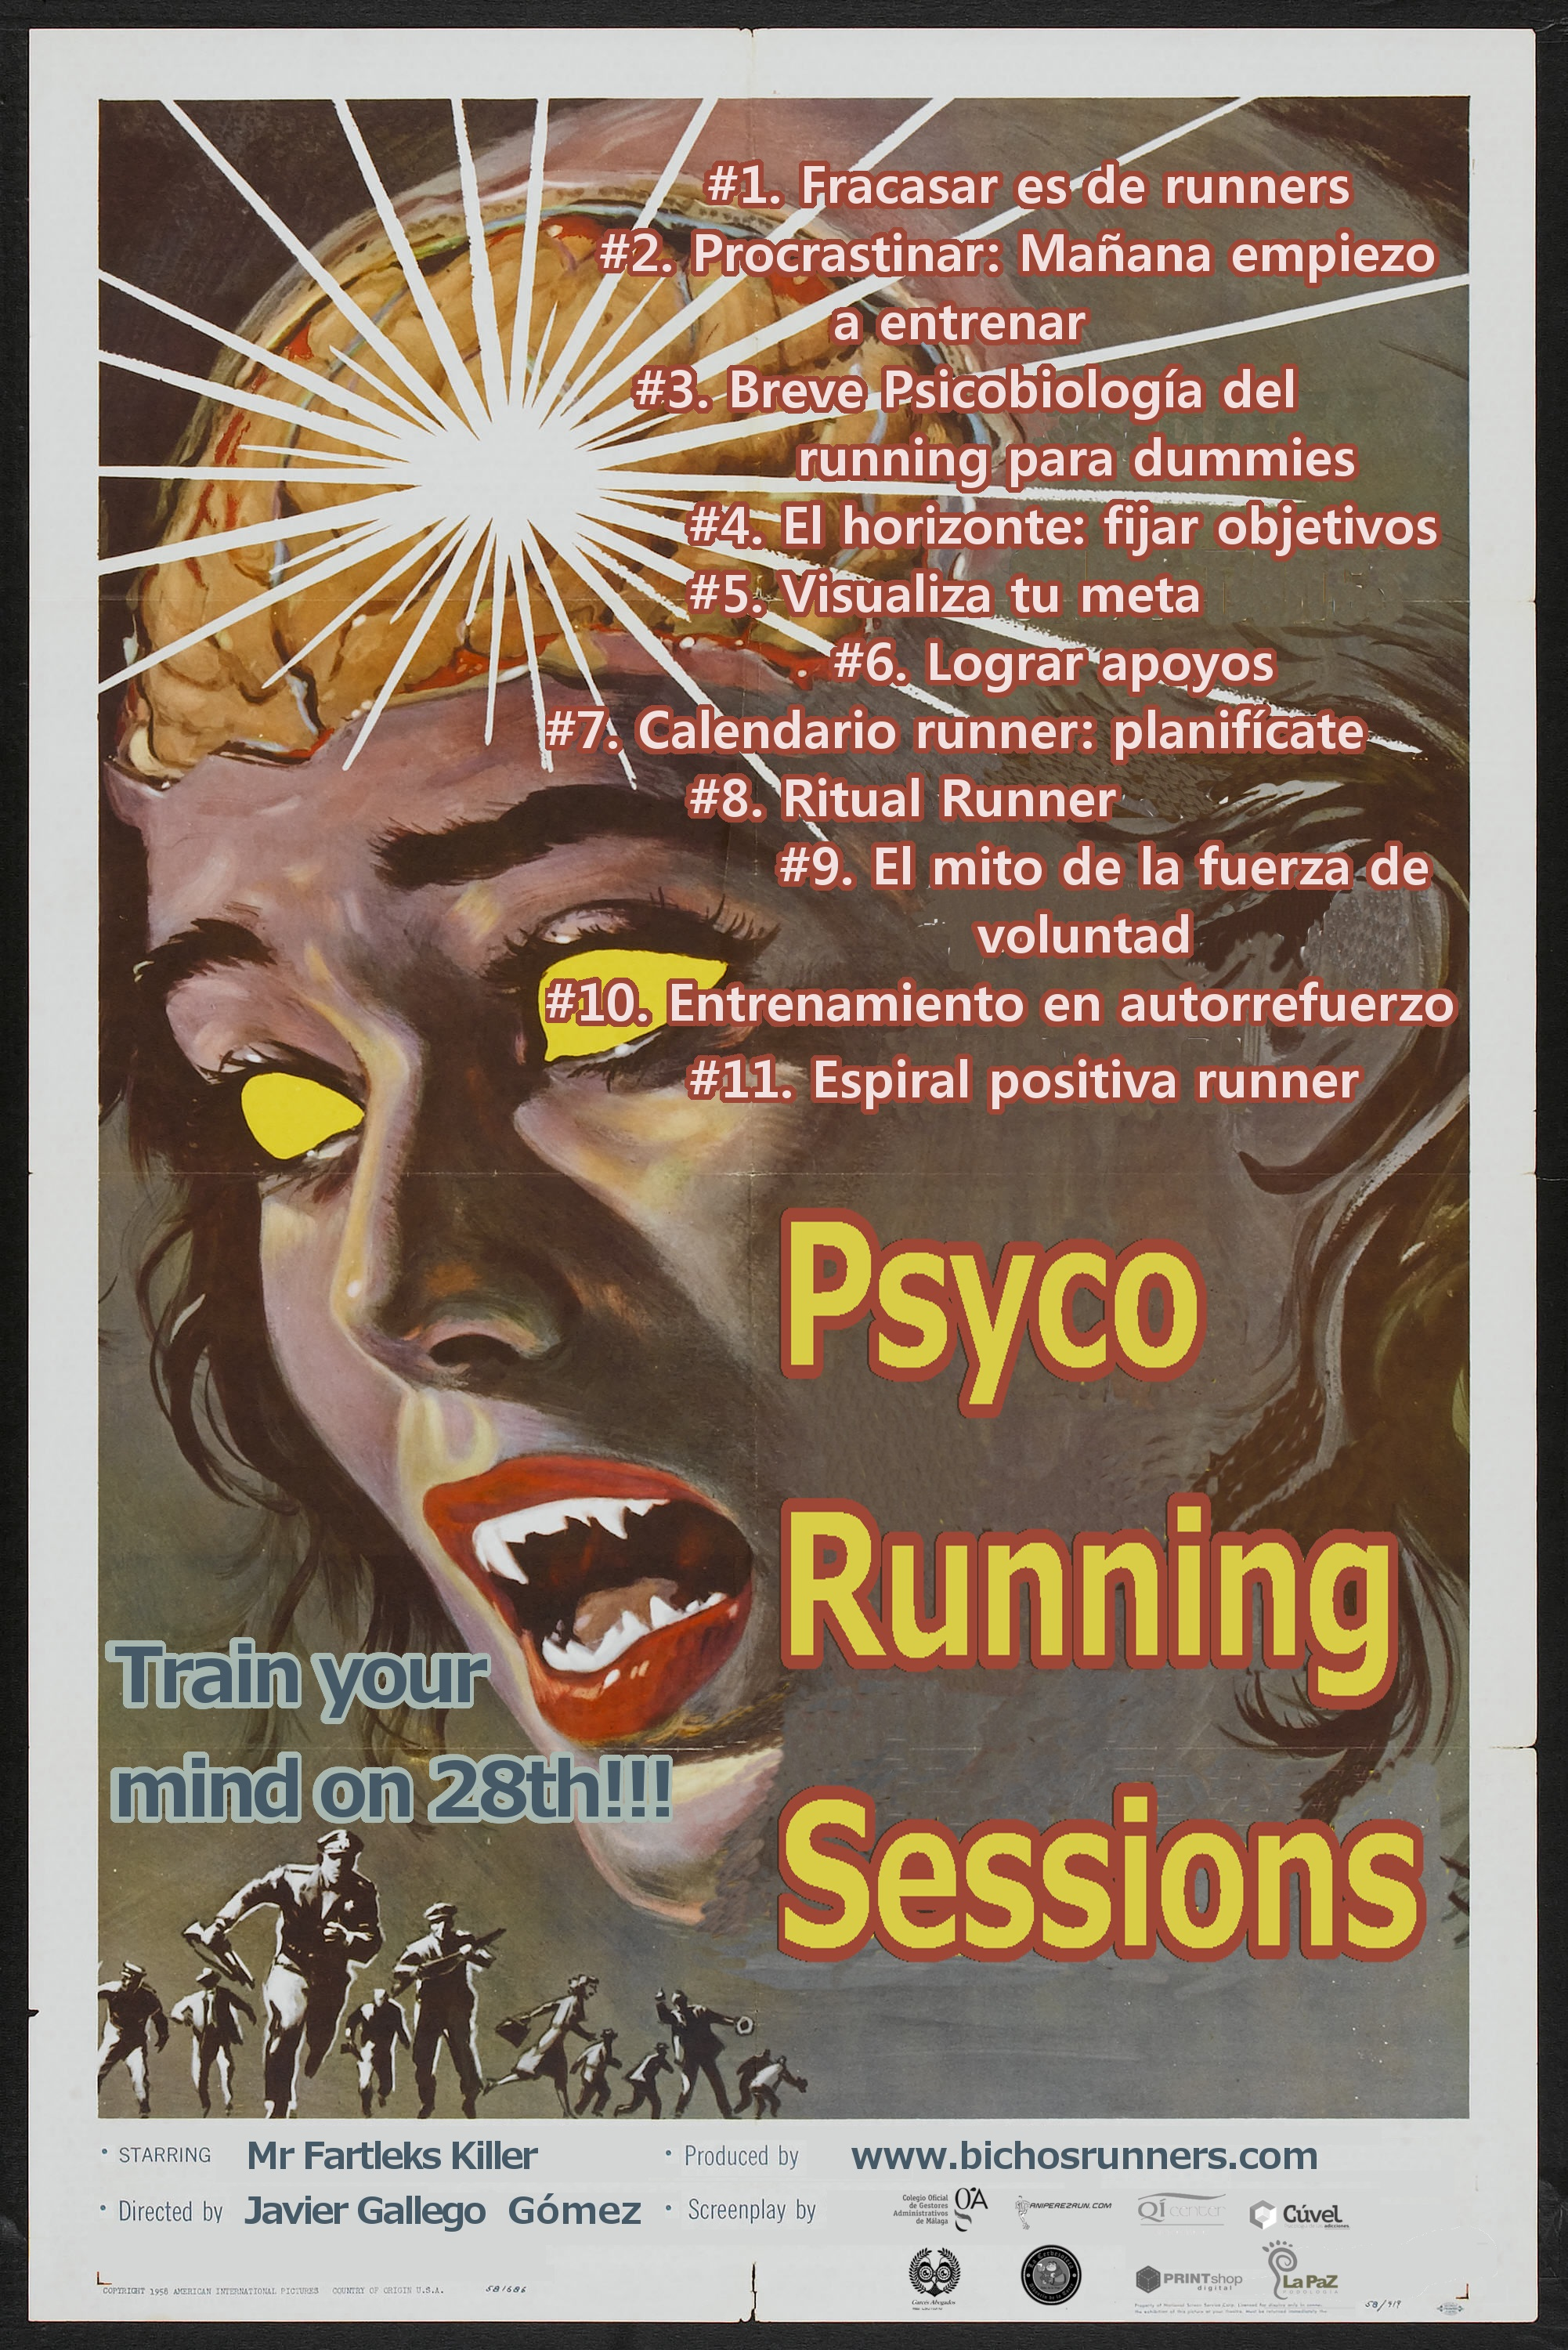 Psyco running sessions_